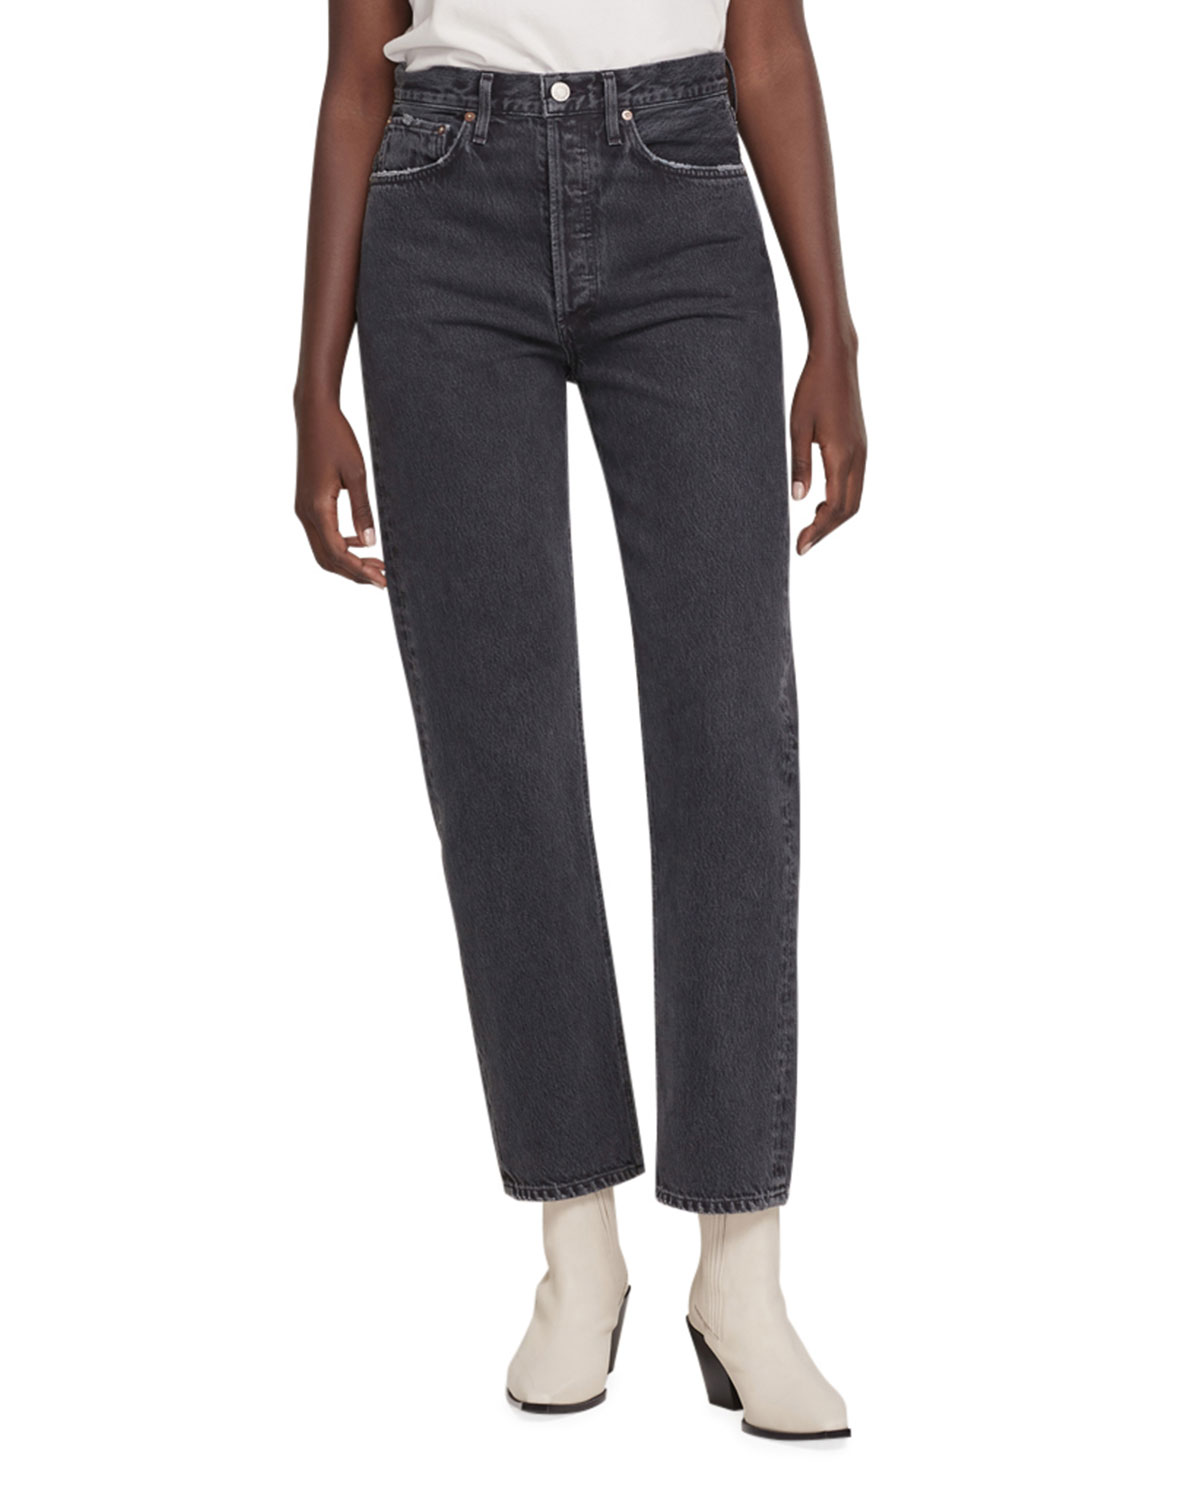 Agolde 90S HIGH-RISE PINCHED-WAIST JEANS